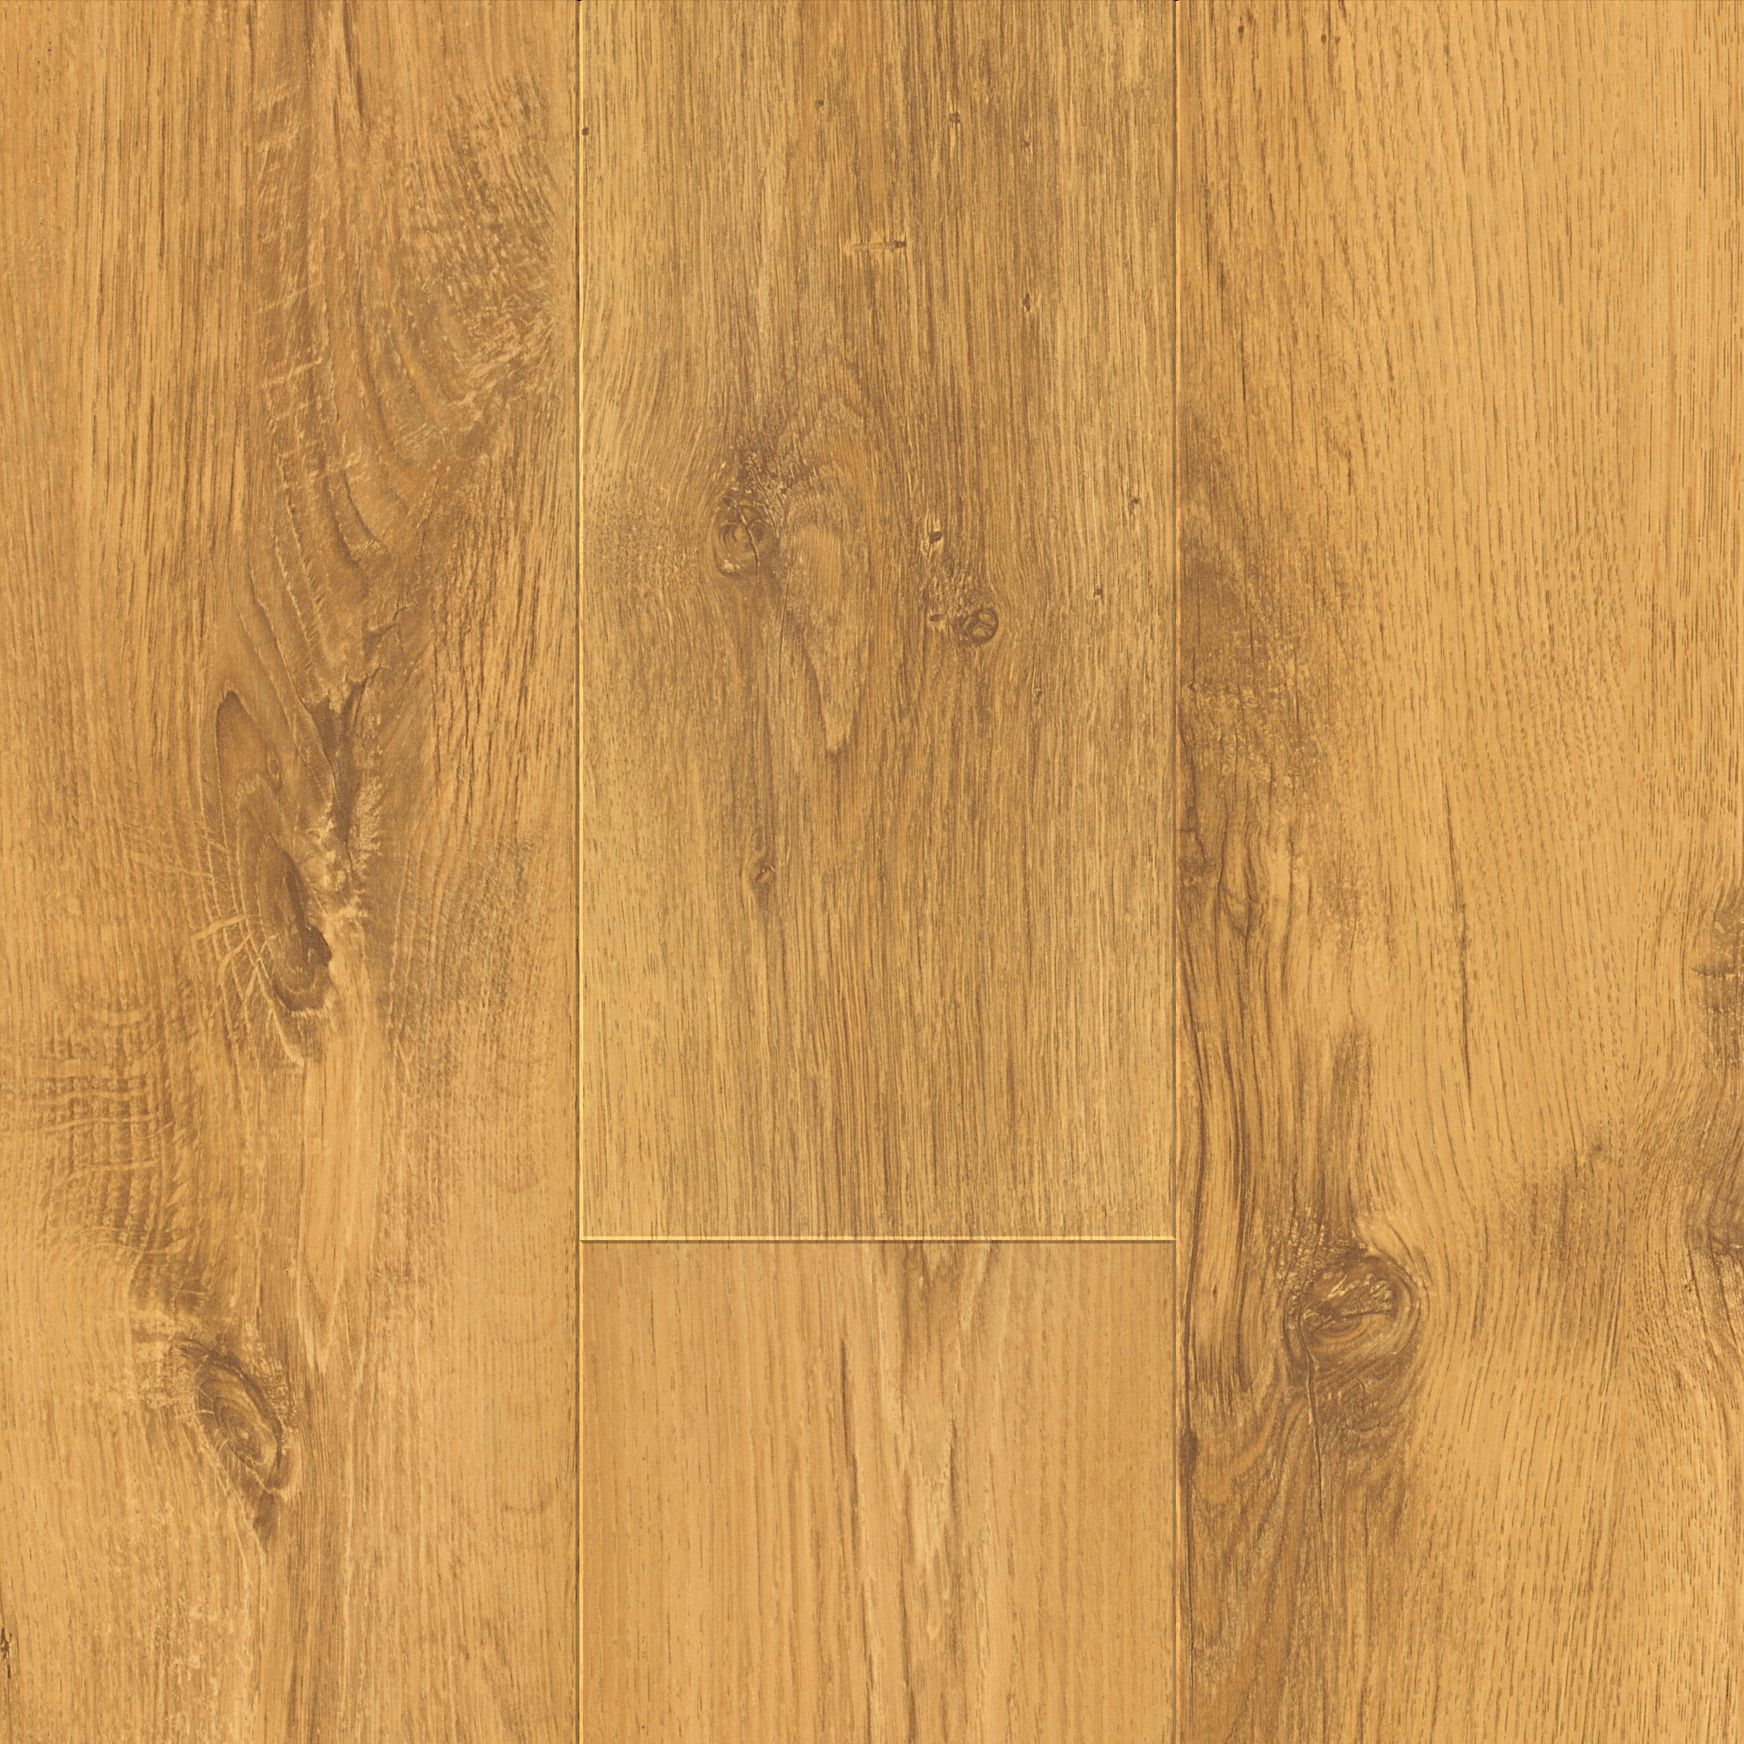 aquateo sutter oak effect waterproof laminate flooring 2 m pack departments diy at bu0026q